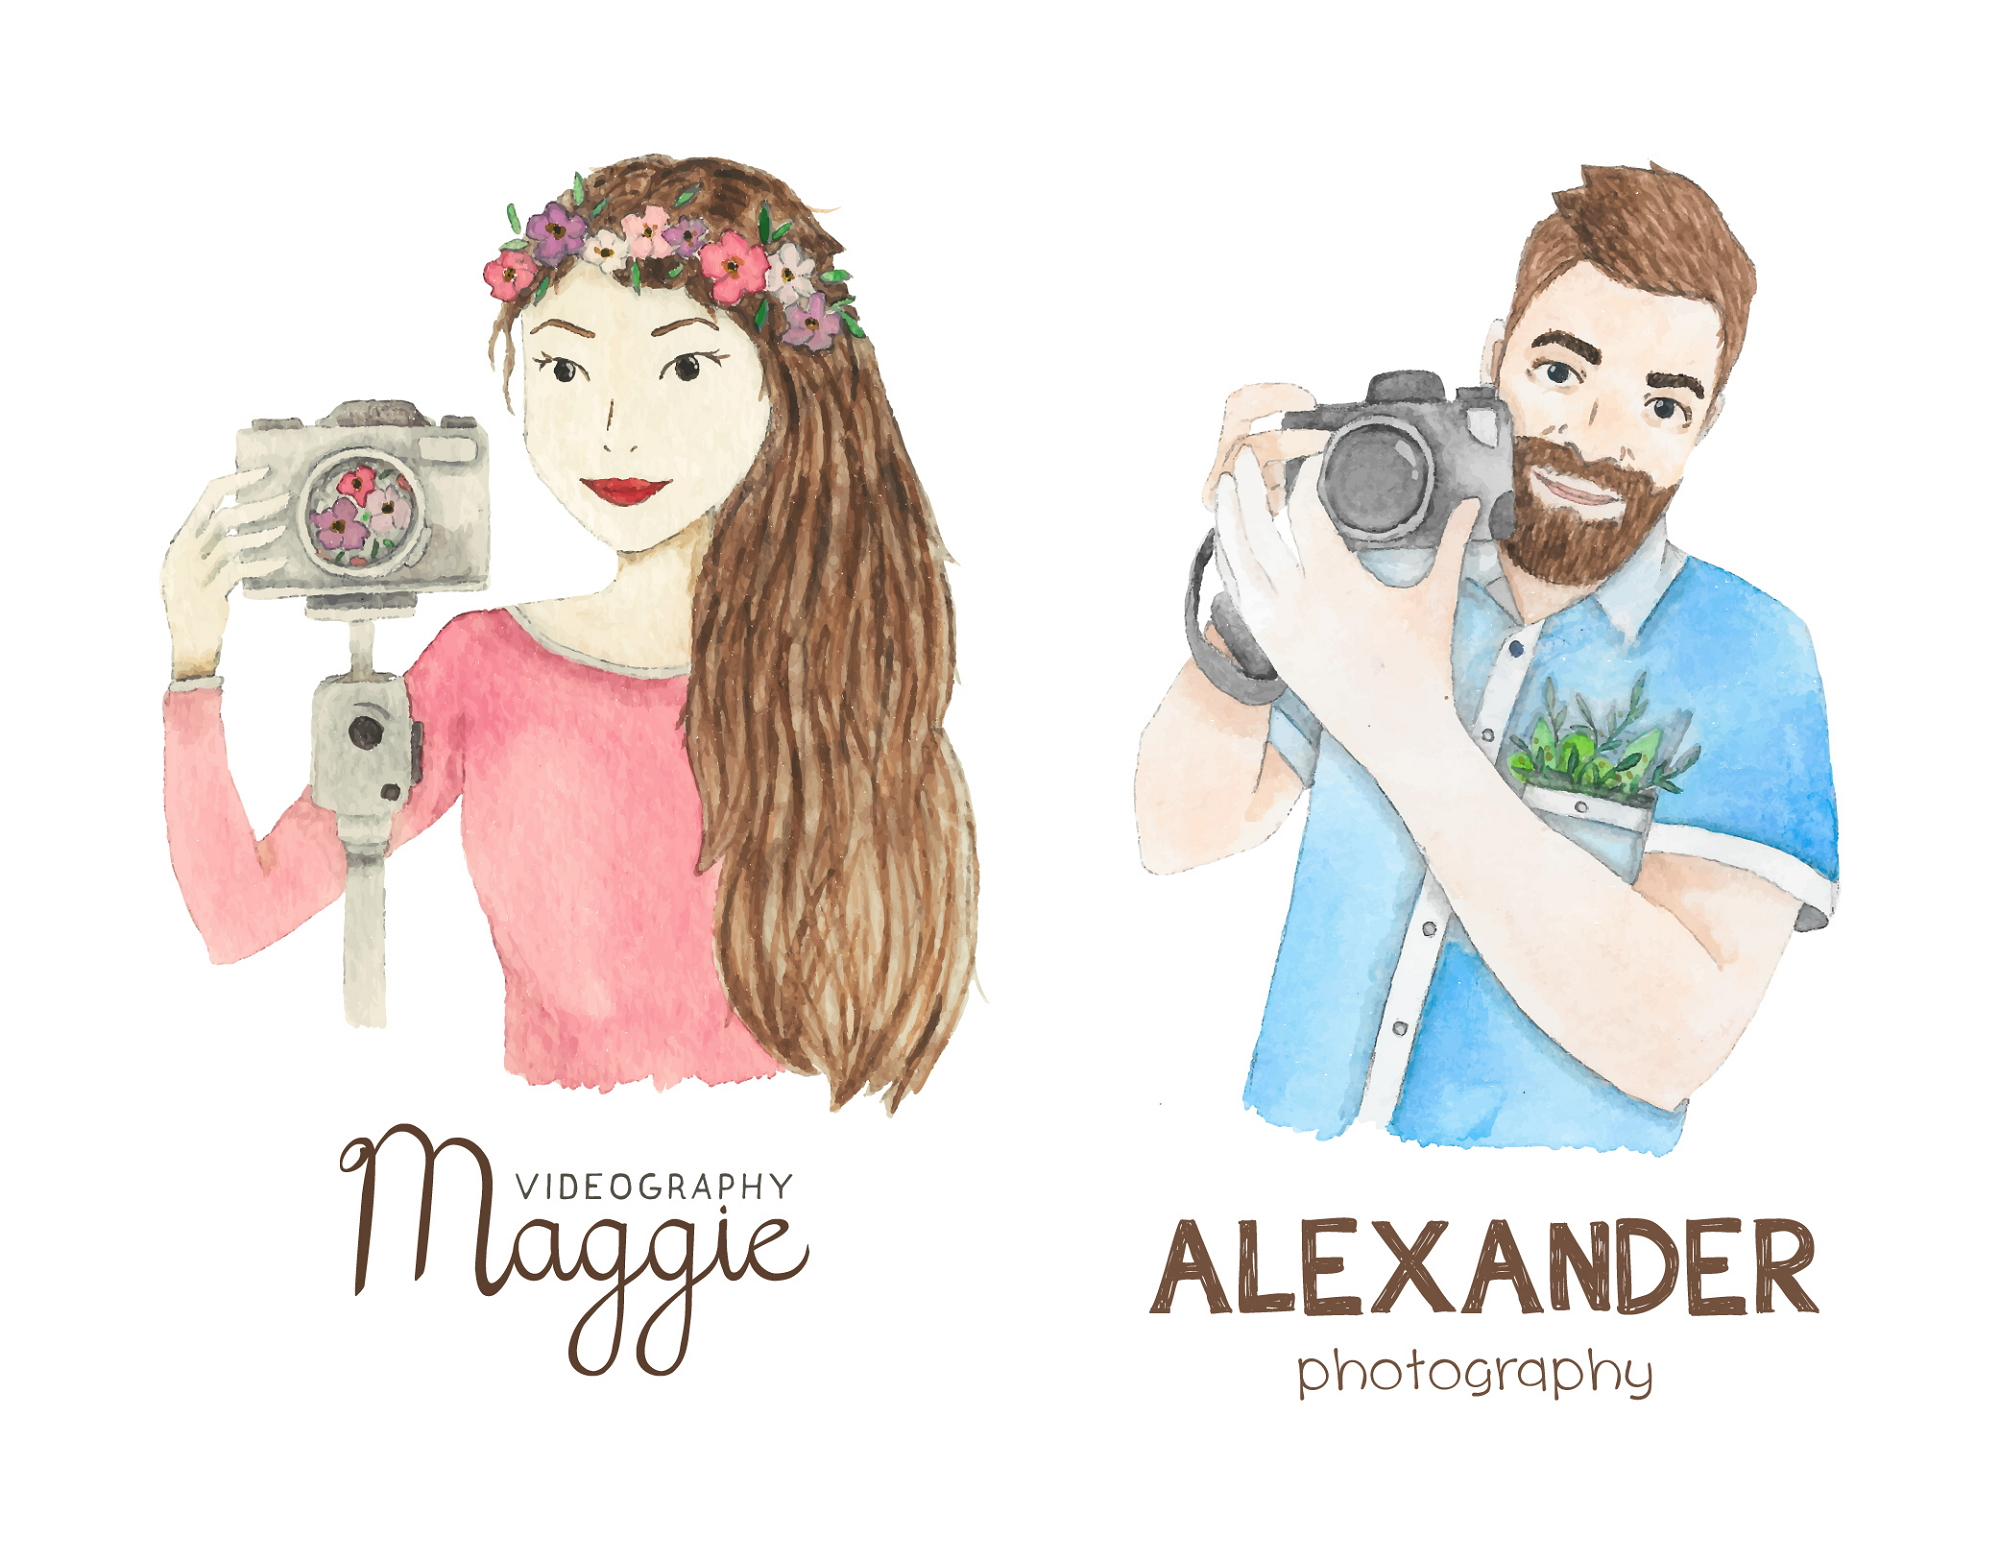 logos and business cards for a photographer/videographer couple item